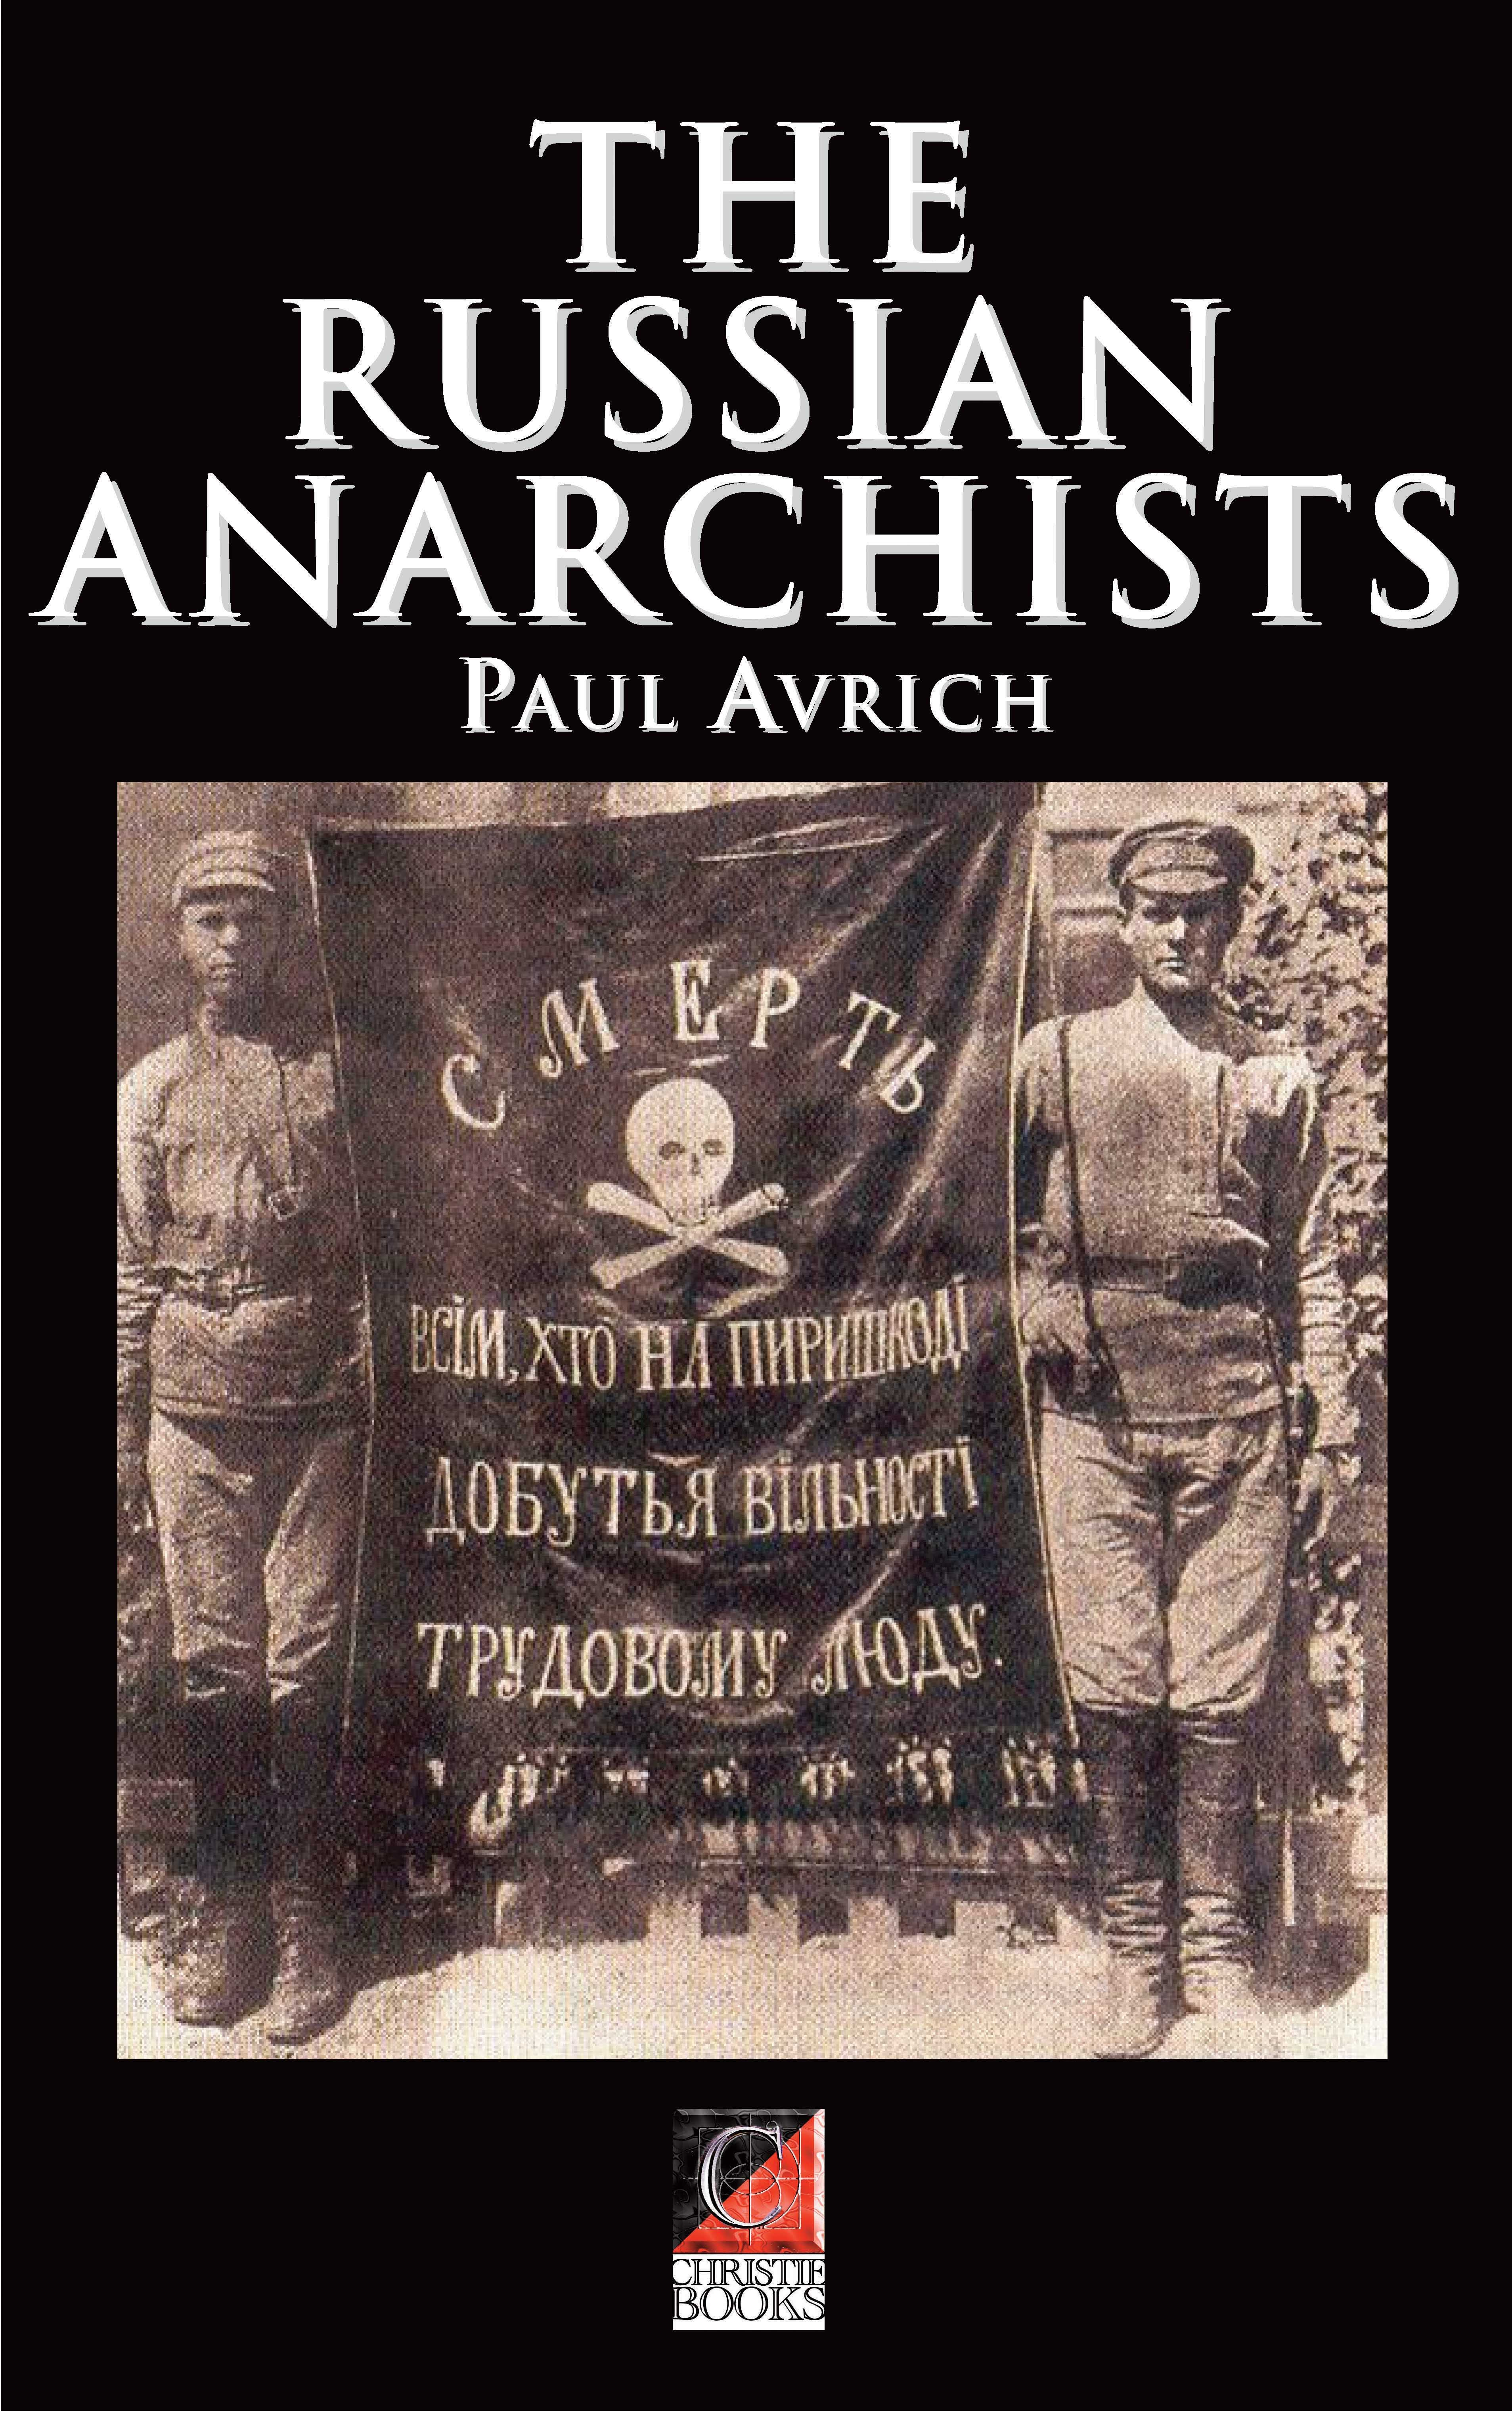 an essay on anarchism in america Us anarchism bibliography a defense of justus schwab the outlook, 25 november 1893 an essay to show the injustice expositors of individualist anarchism in america, 1827-1908 dekalb, ill.